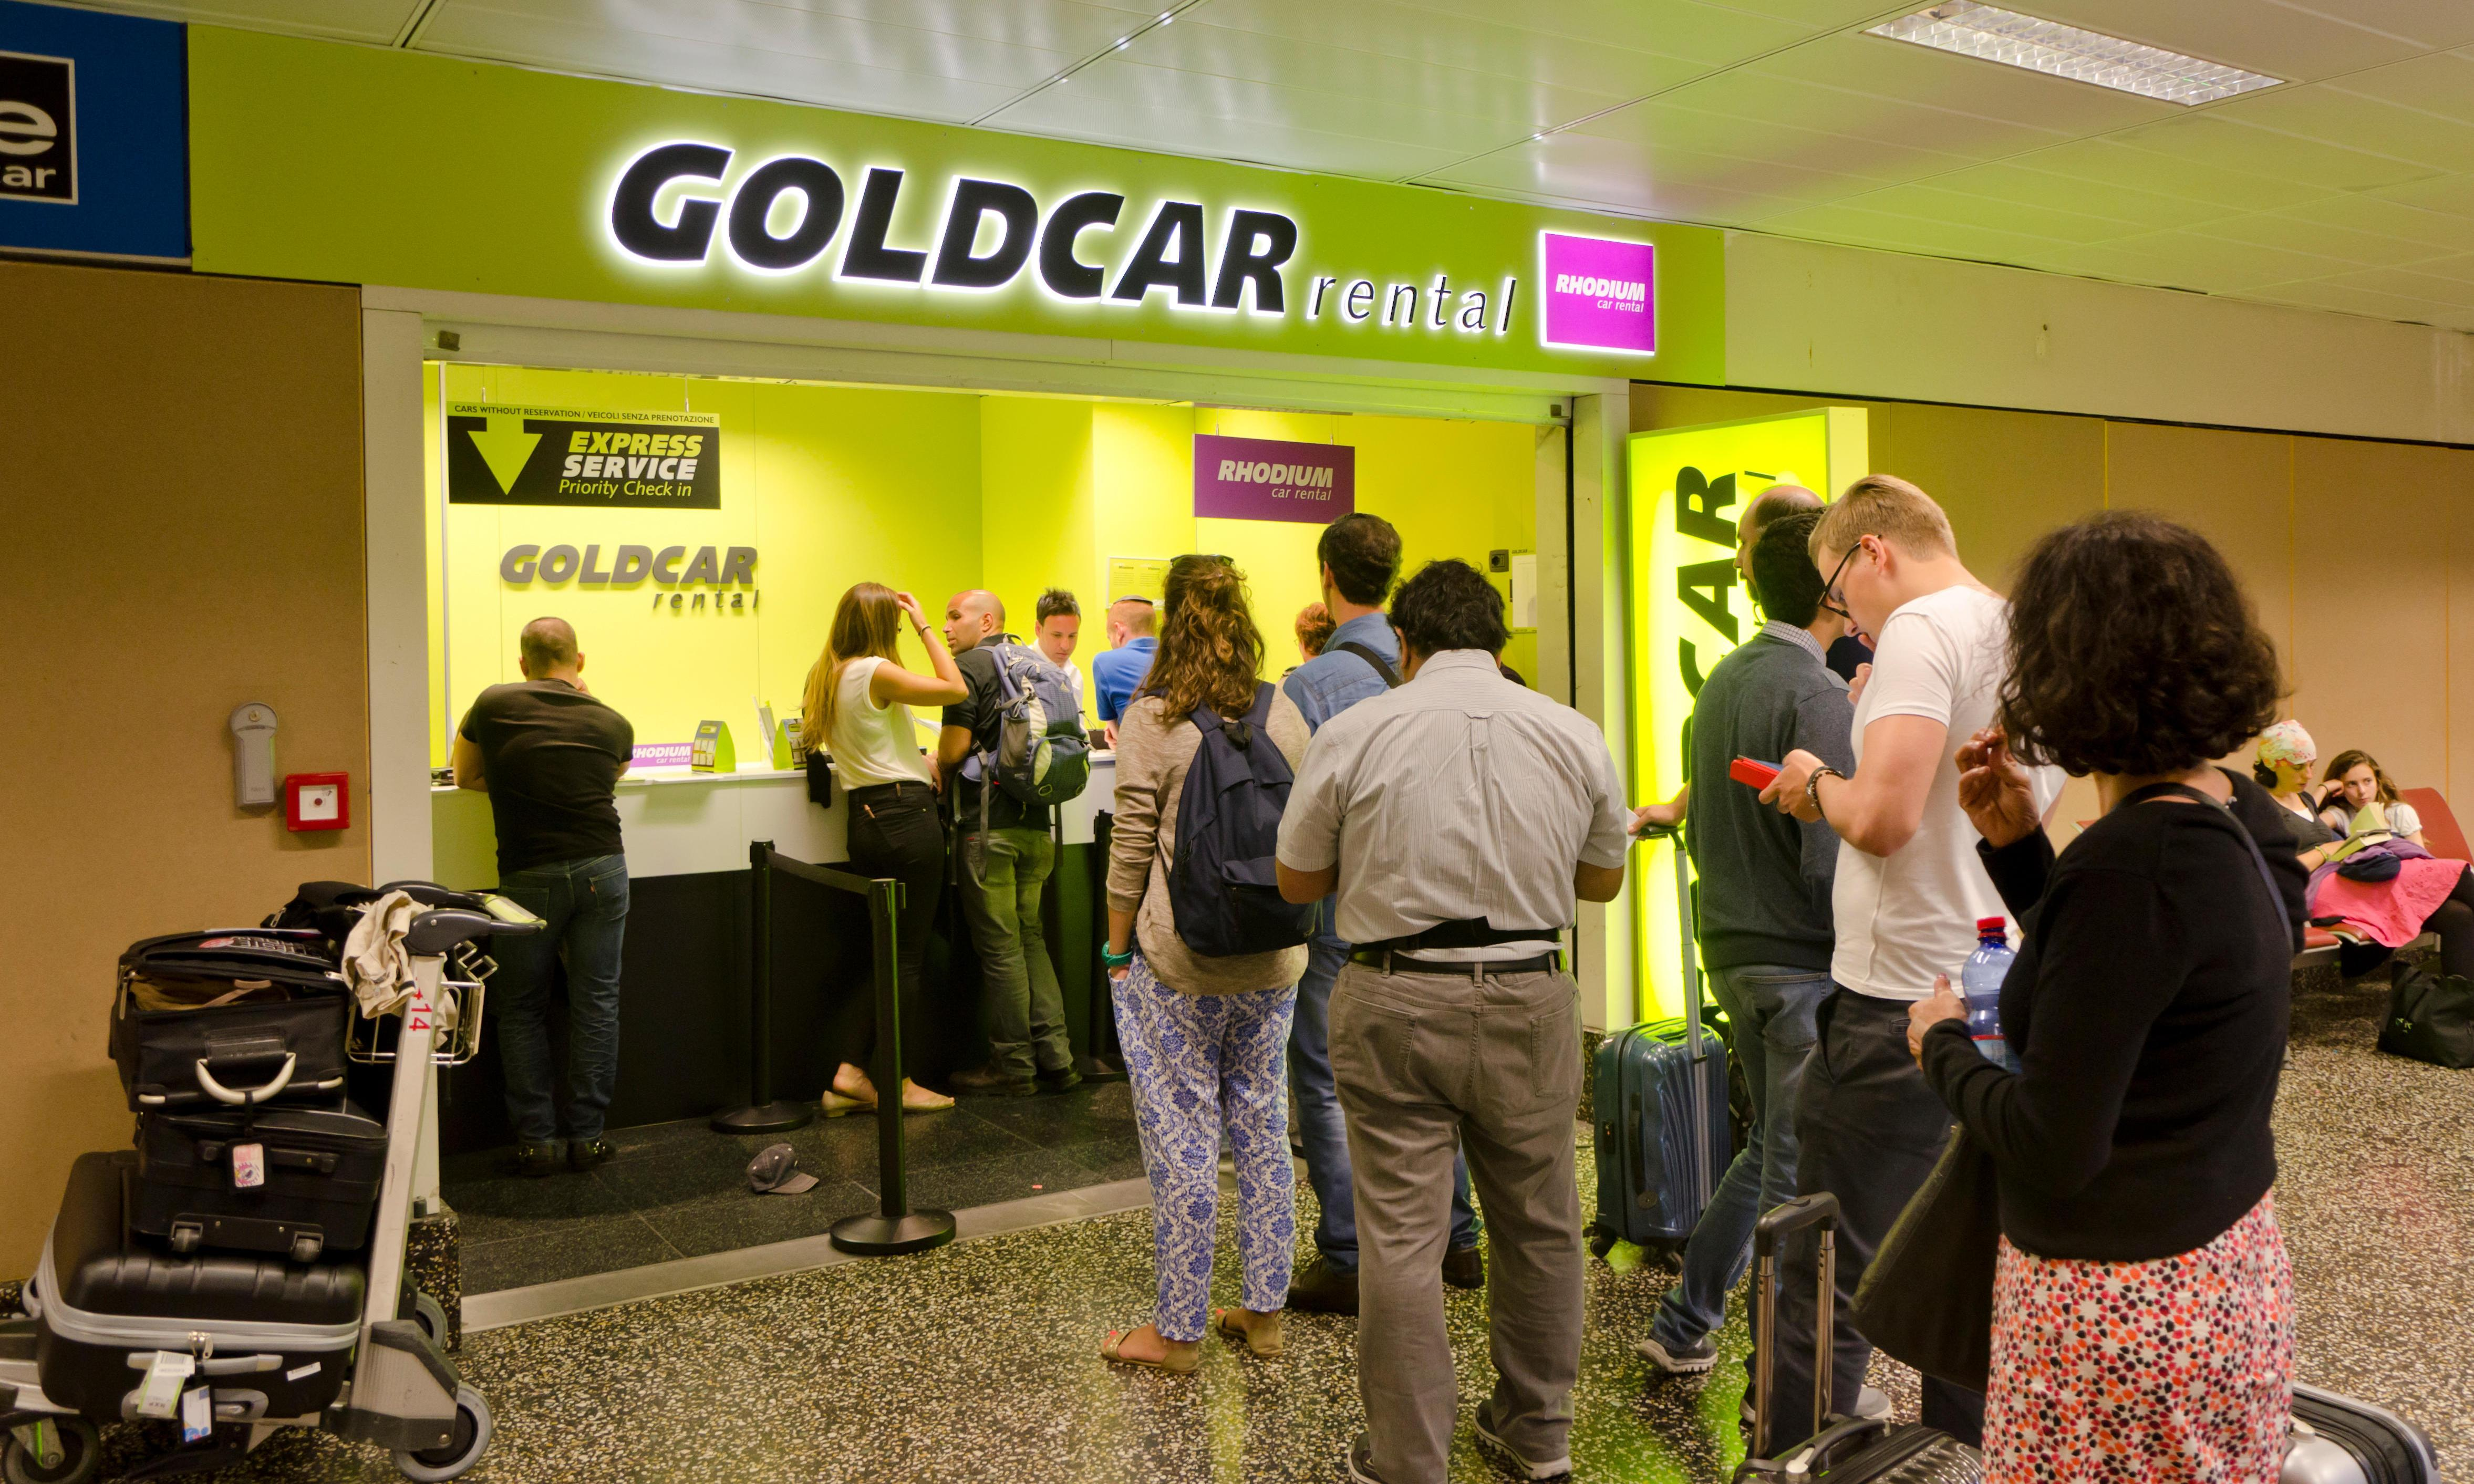 Goldcar named worst car hire company in Which? survey